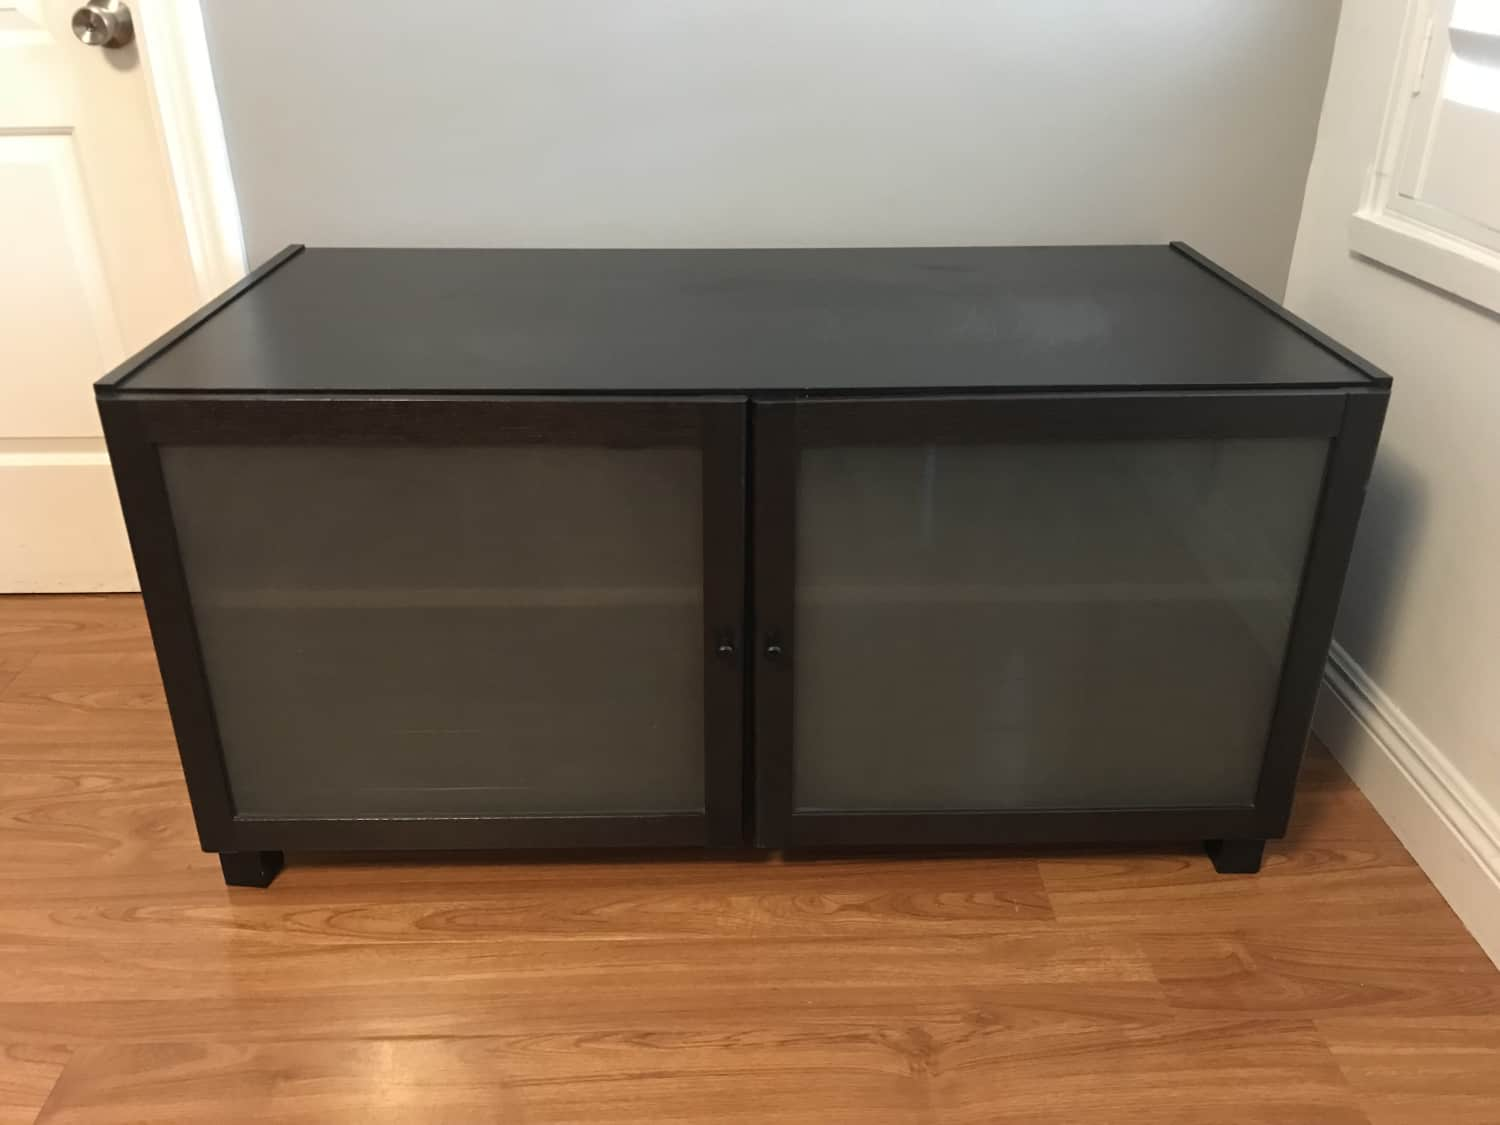 Ikea Benno Tv Stand Storage Unit Apartment Therapy S Bazaar